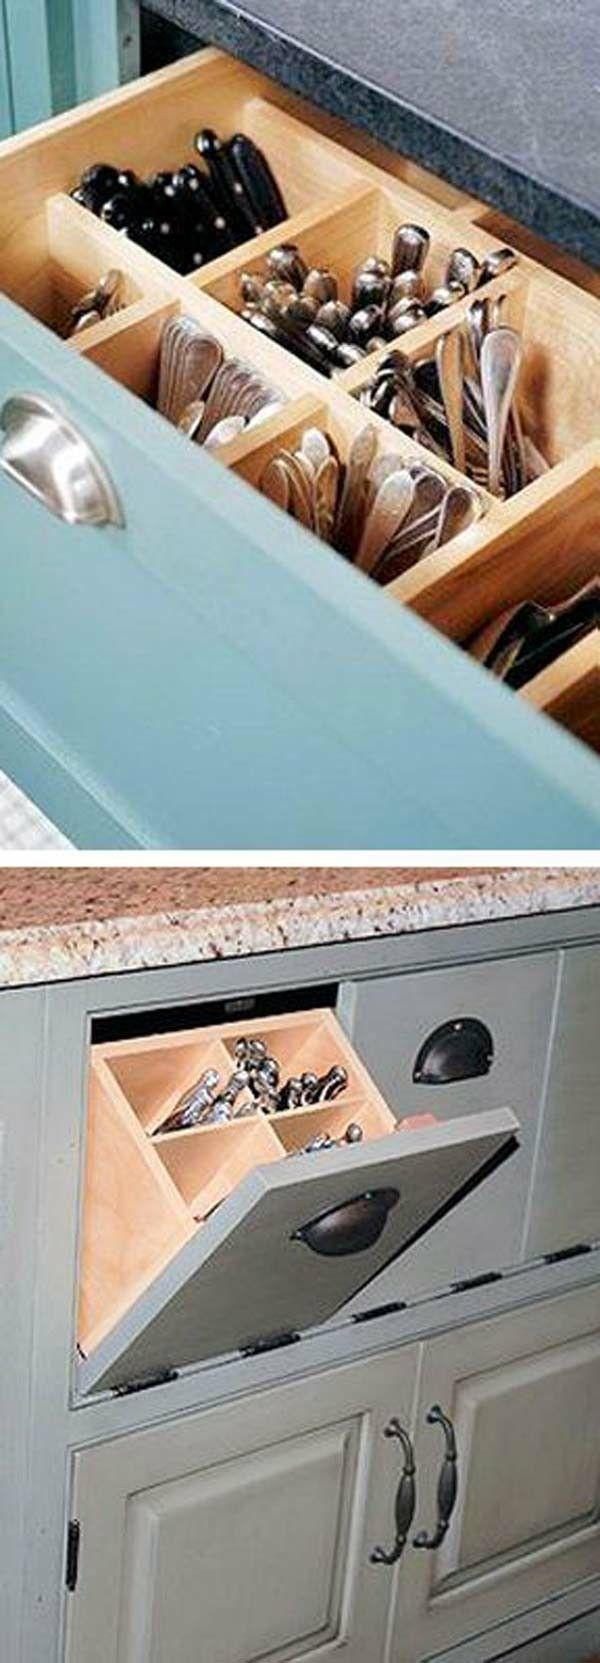 power points | Home | Pinterest | Kitchens, House and Future